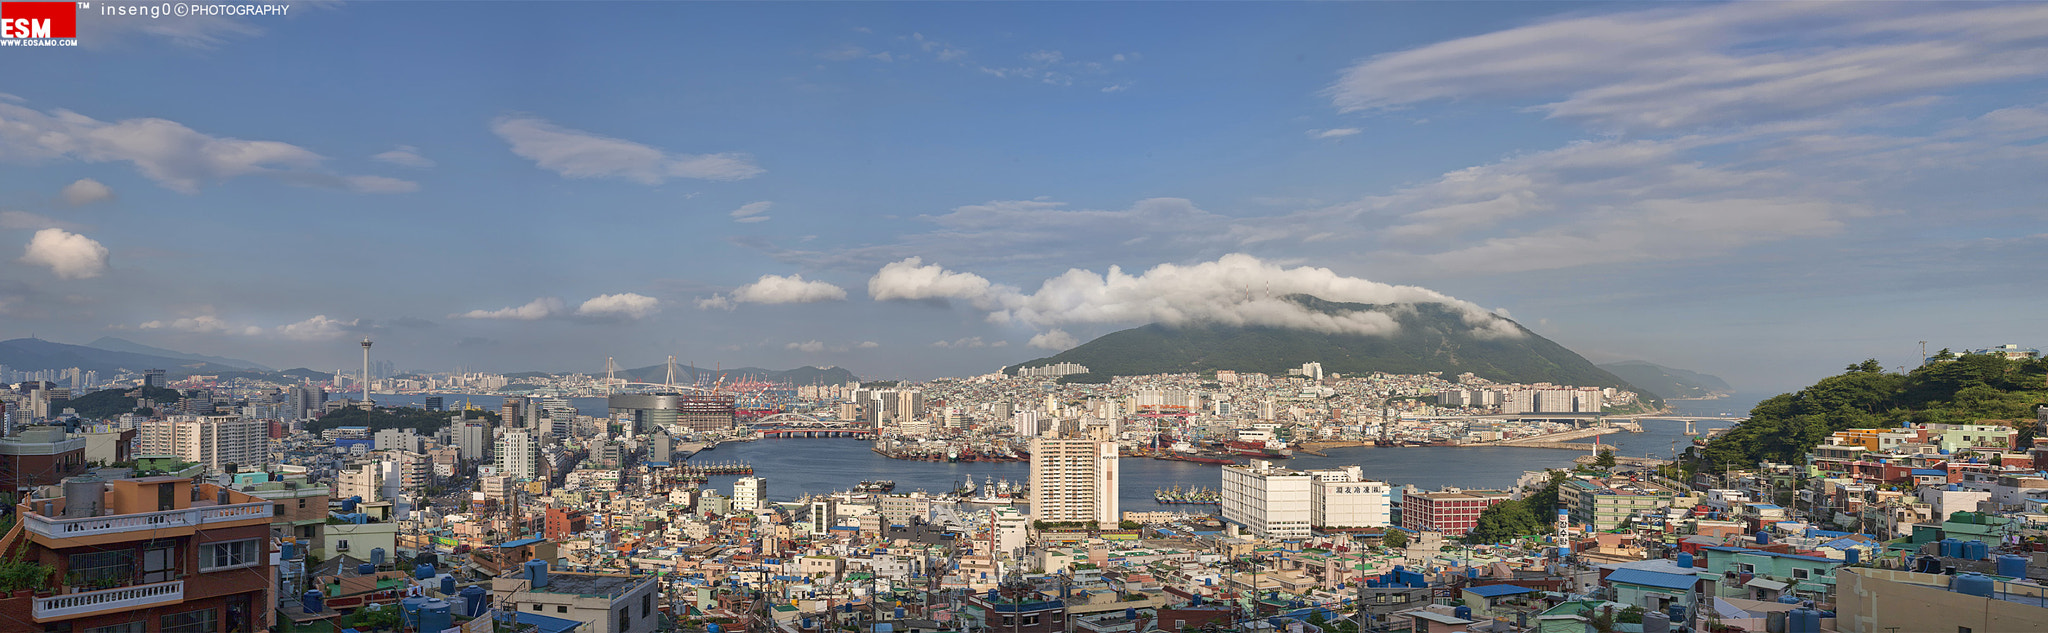 Photograph BUSAN by chan-wook Kim on 500px